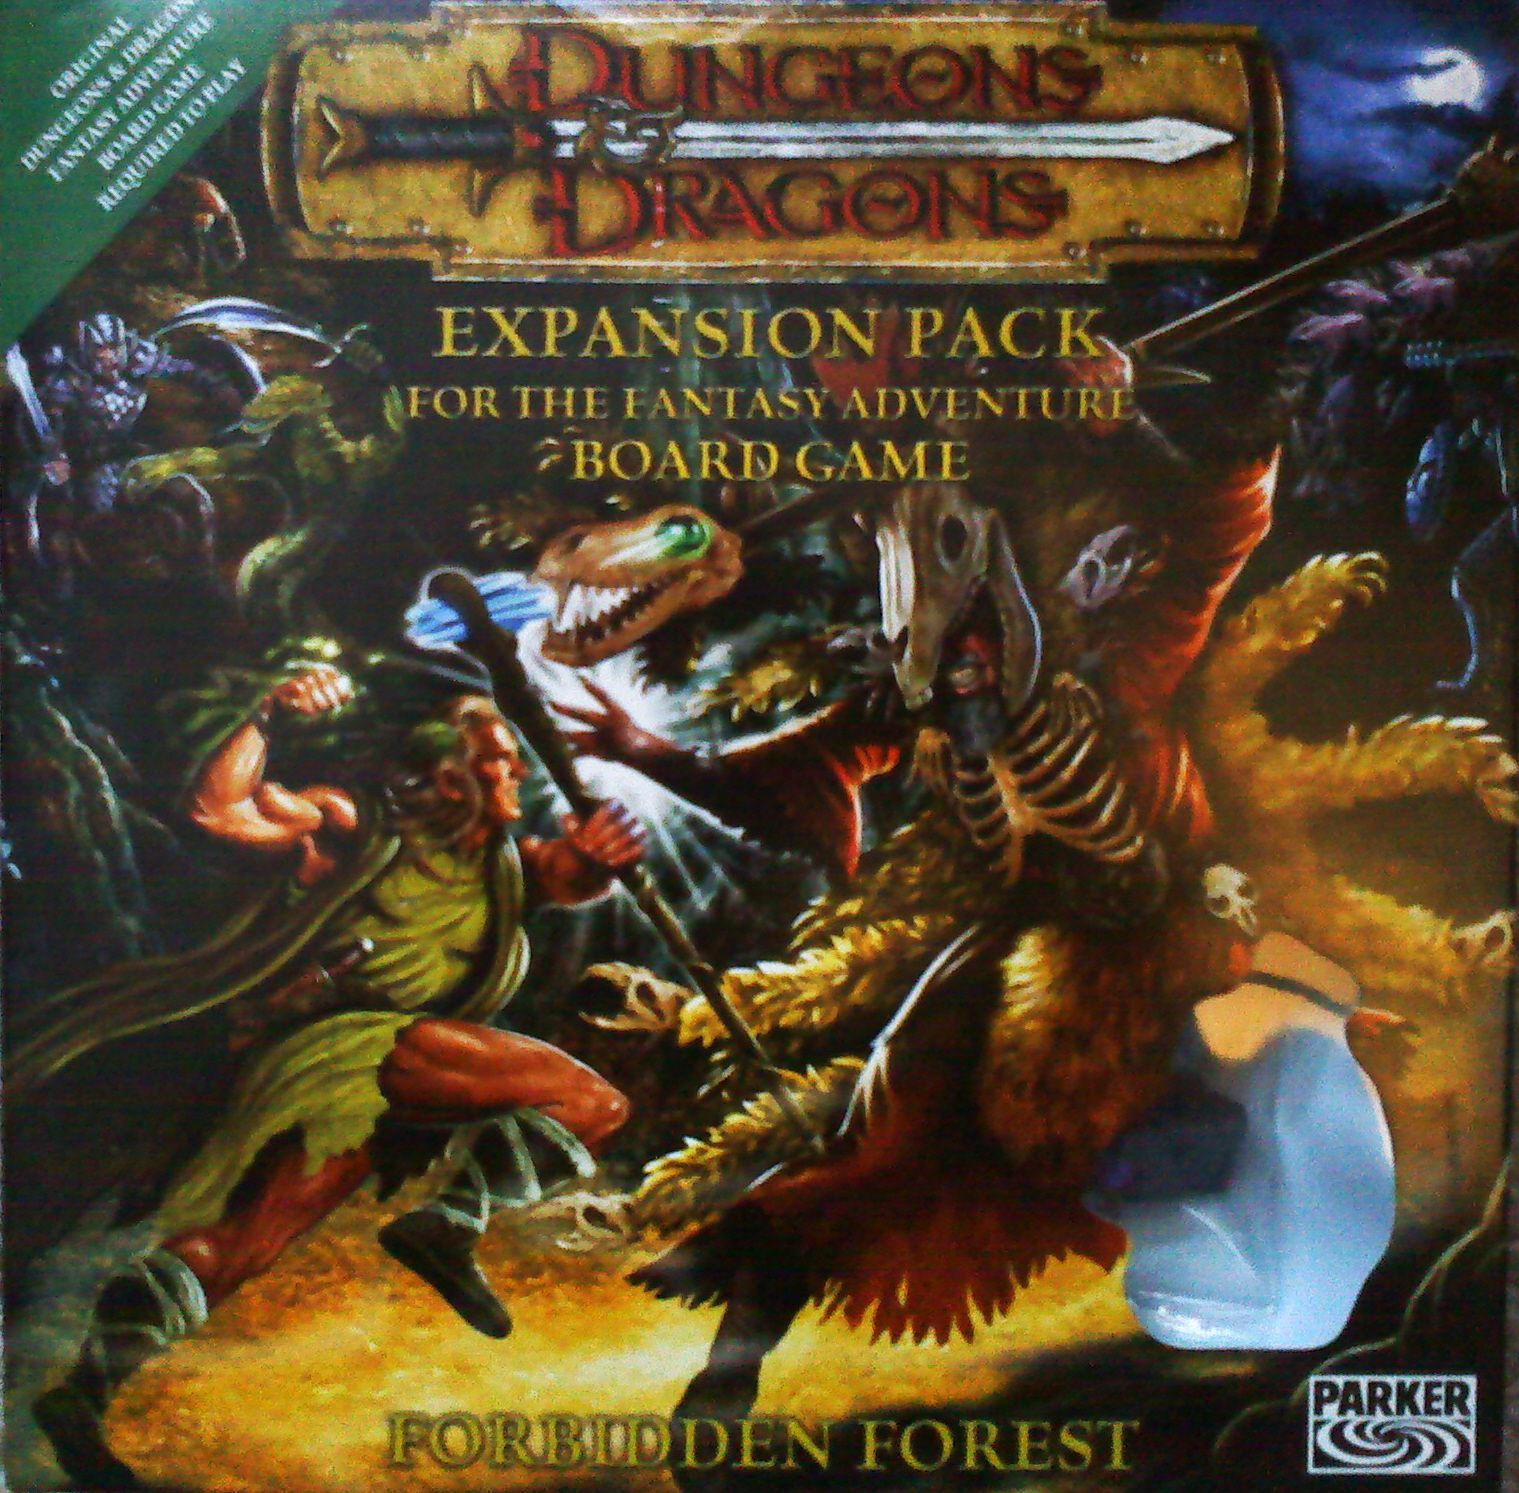 Dungeons & Dragons: The Fantasy Adventure Board Game – Forbidden Forest Expansion Pack